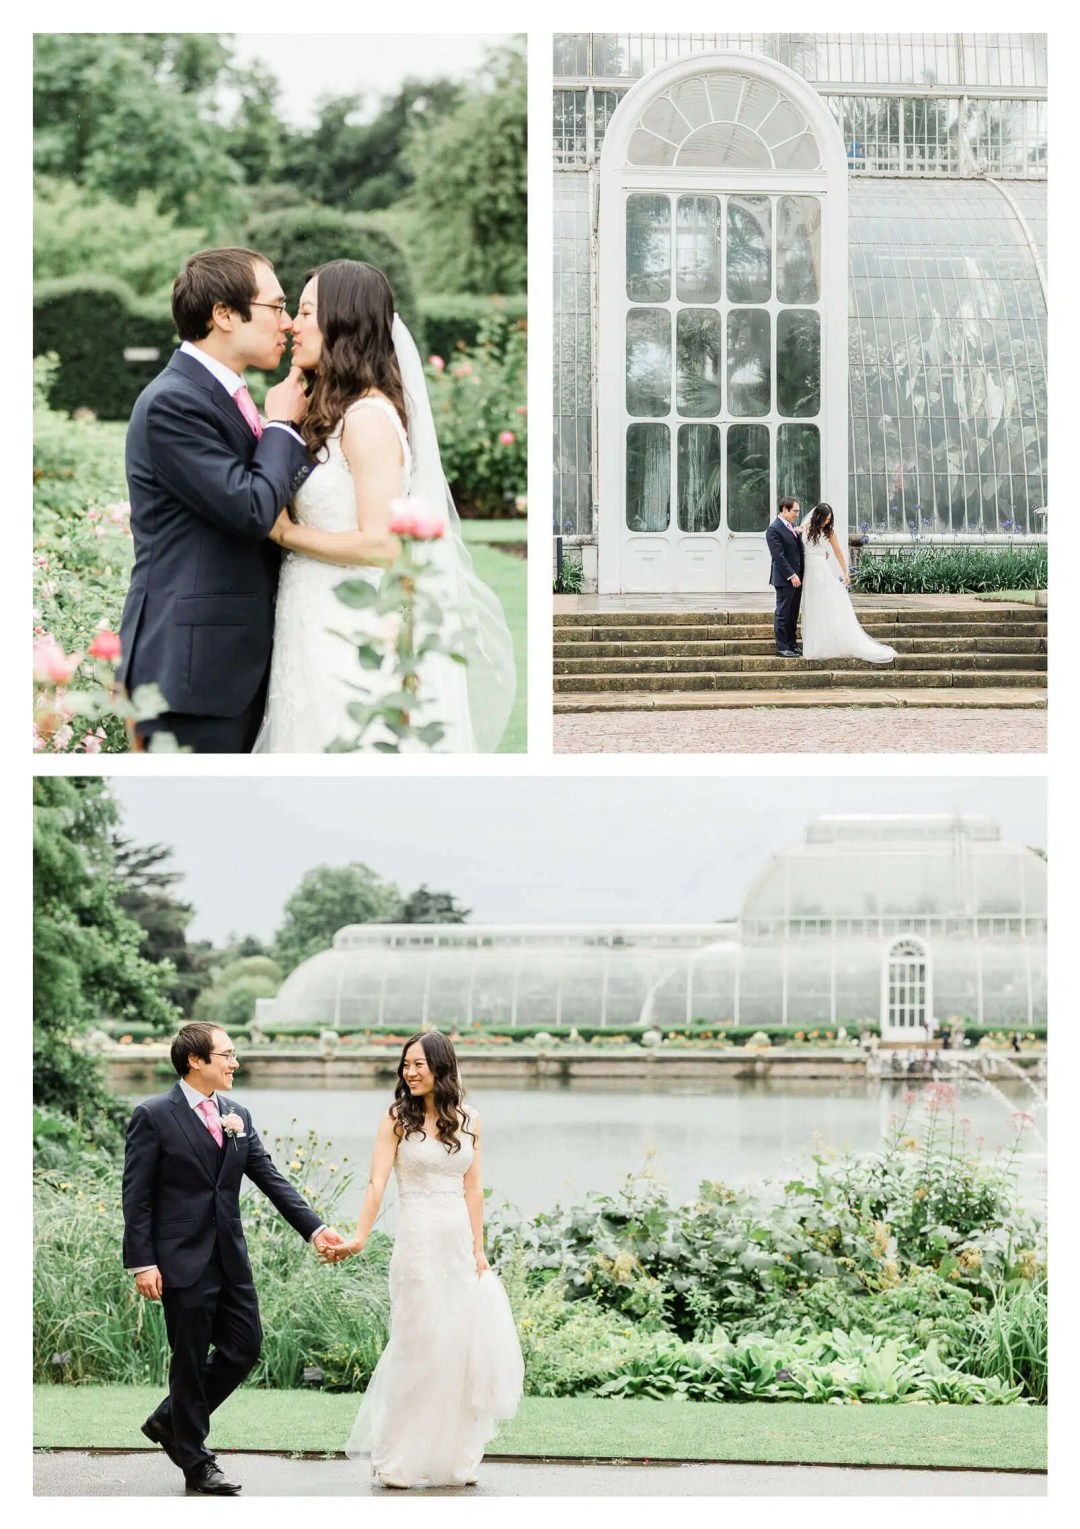 Kew Garden wedding couple portraits in rose garden | London photographer